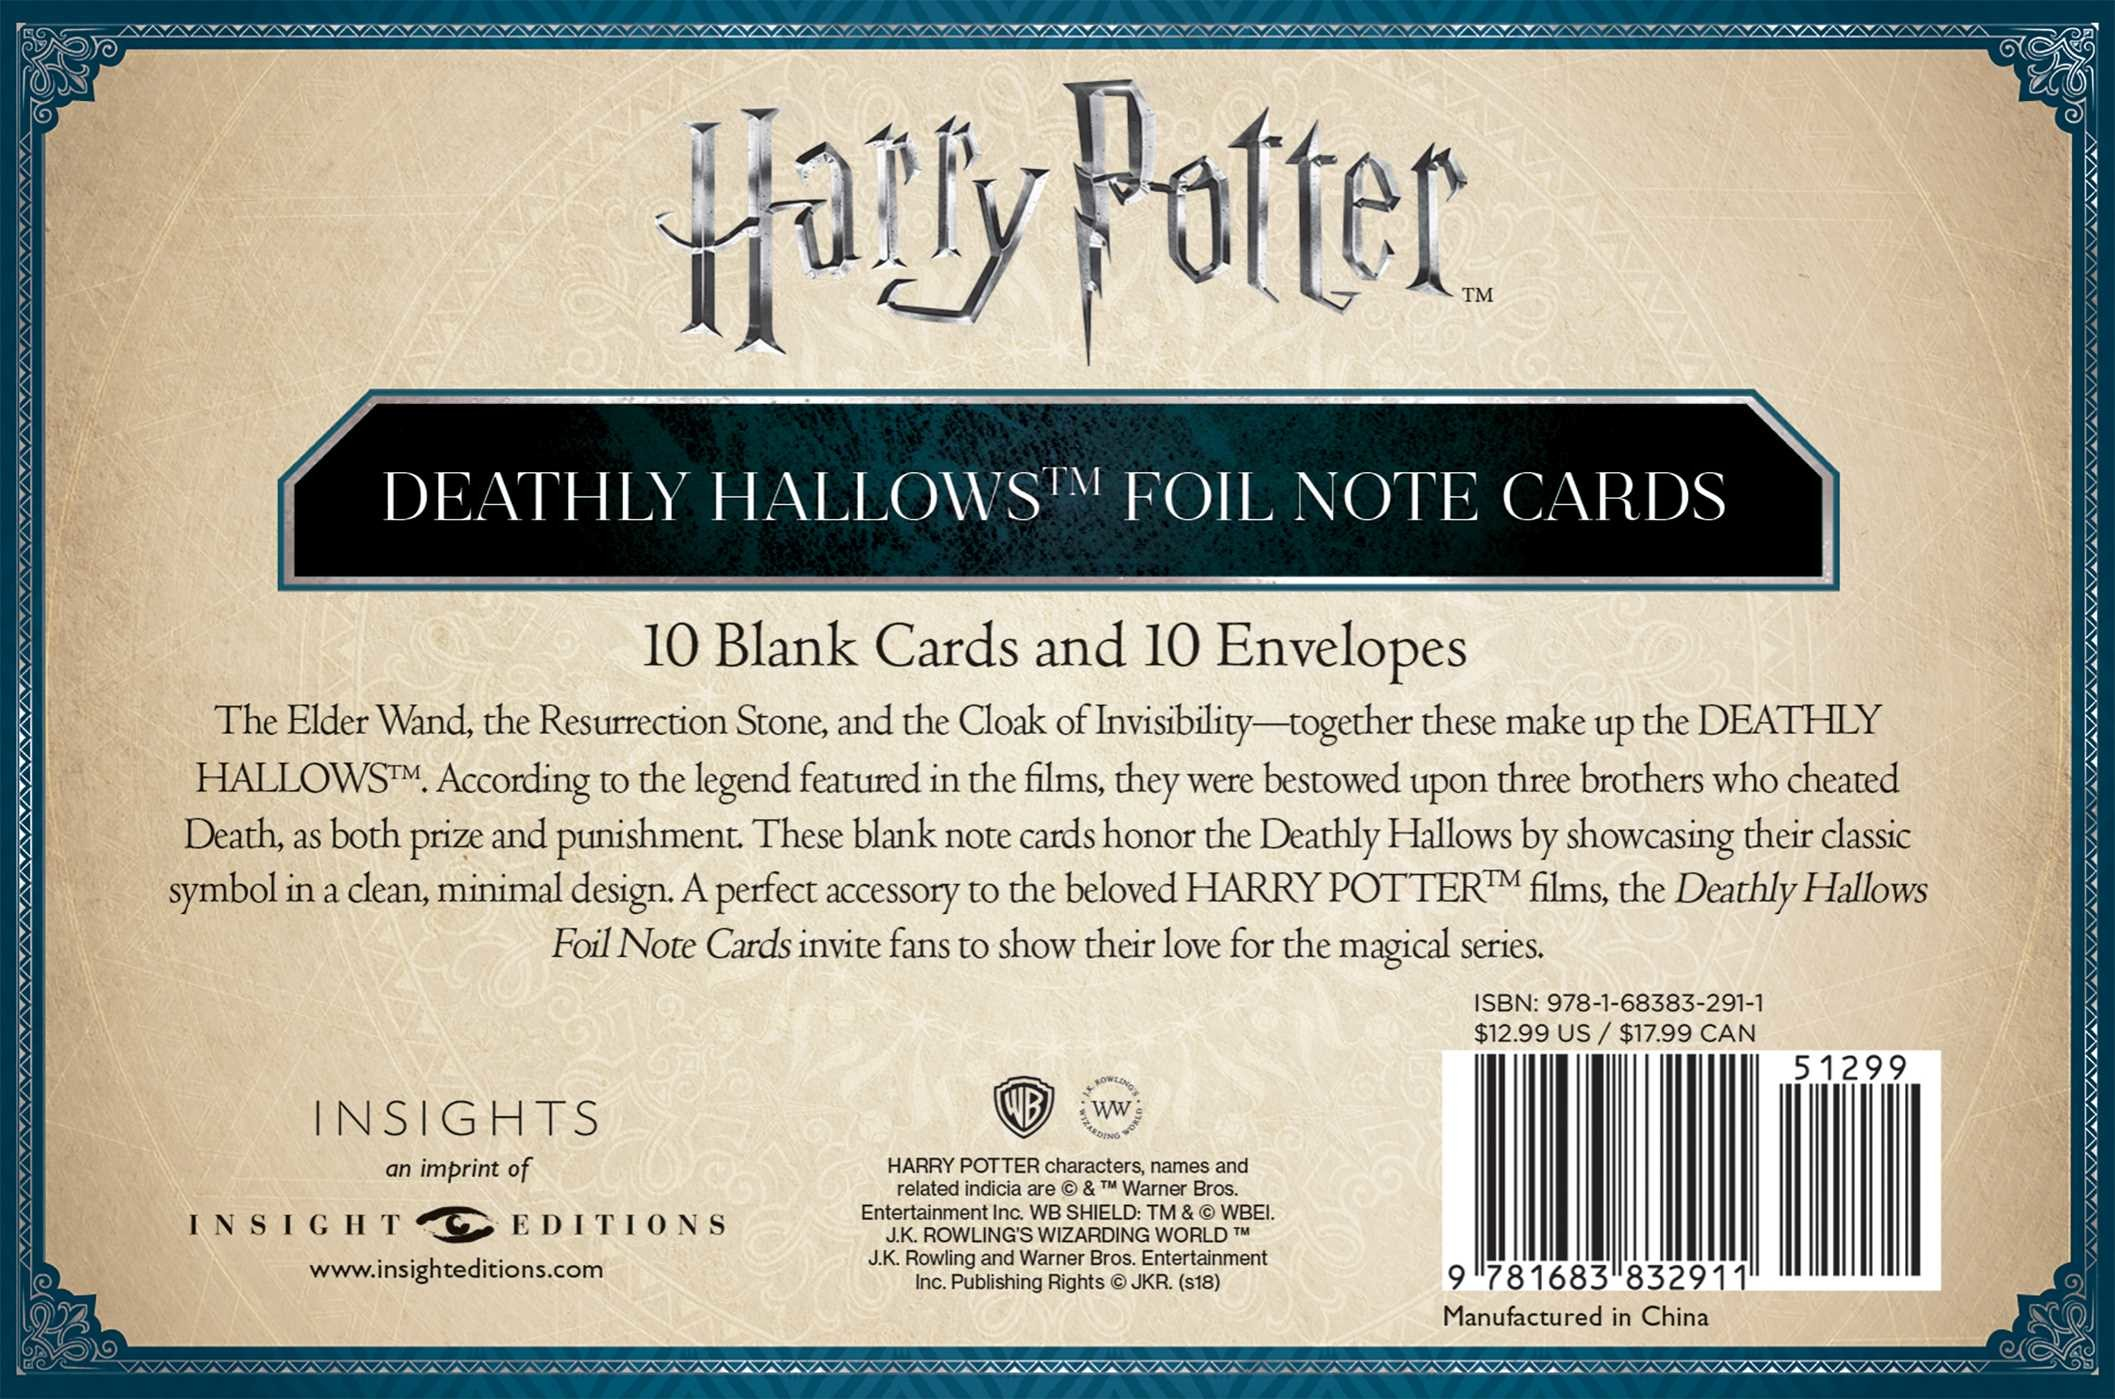 Harry potter deathly hallows foil note cards set of 10 9781683832911.in02